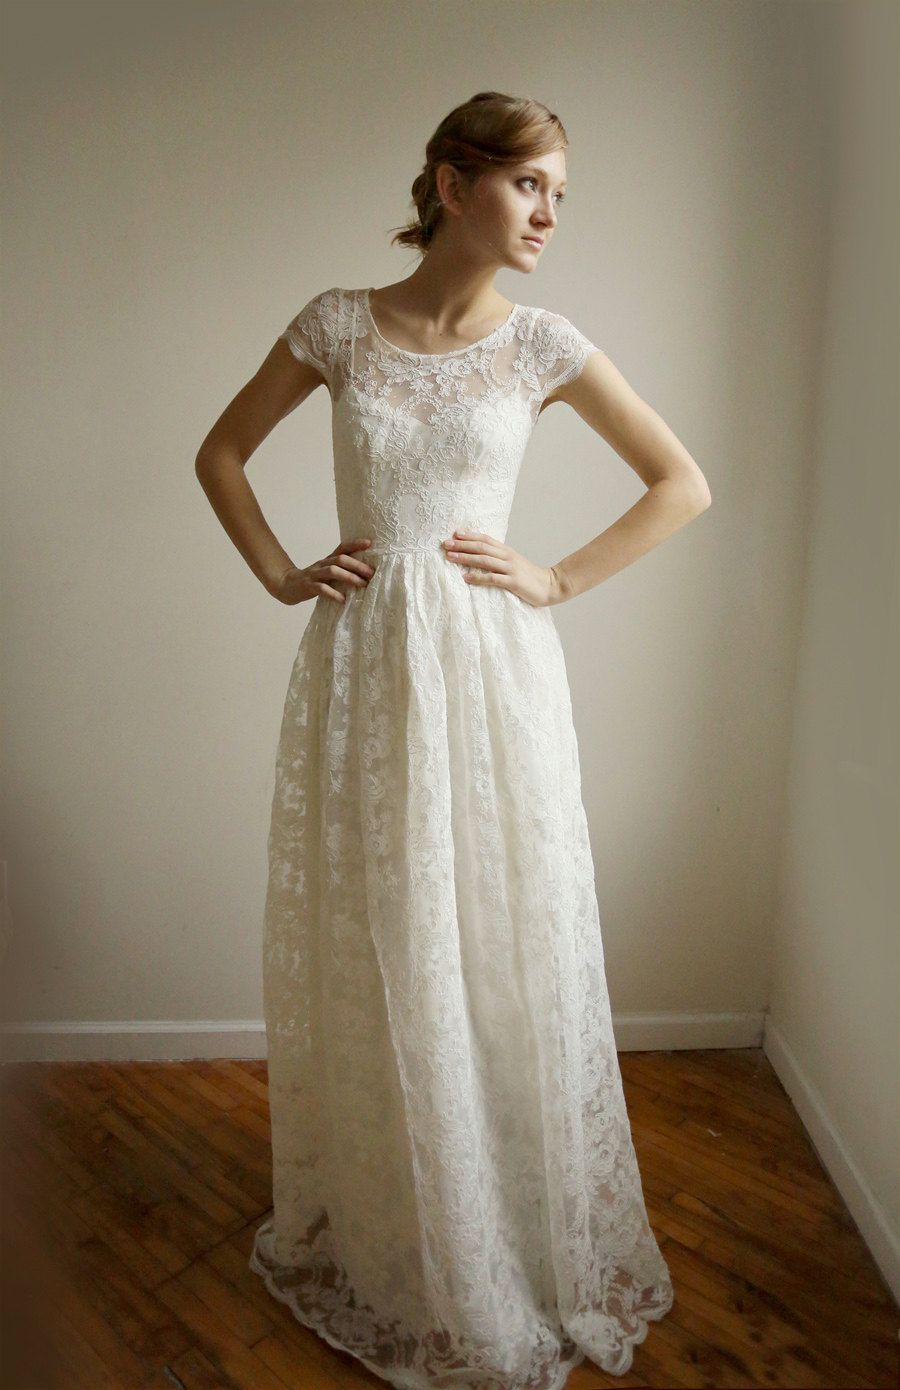 Best 25+ Cotton wedding dresses ideas on Pinterest | Wedding dress ...